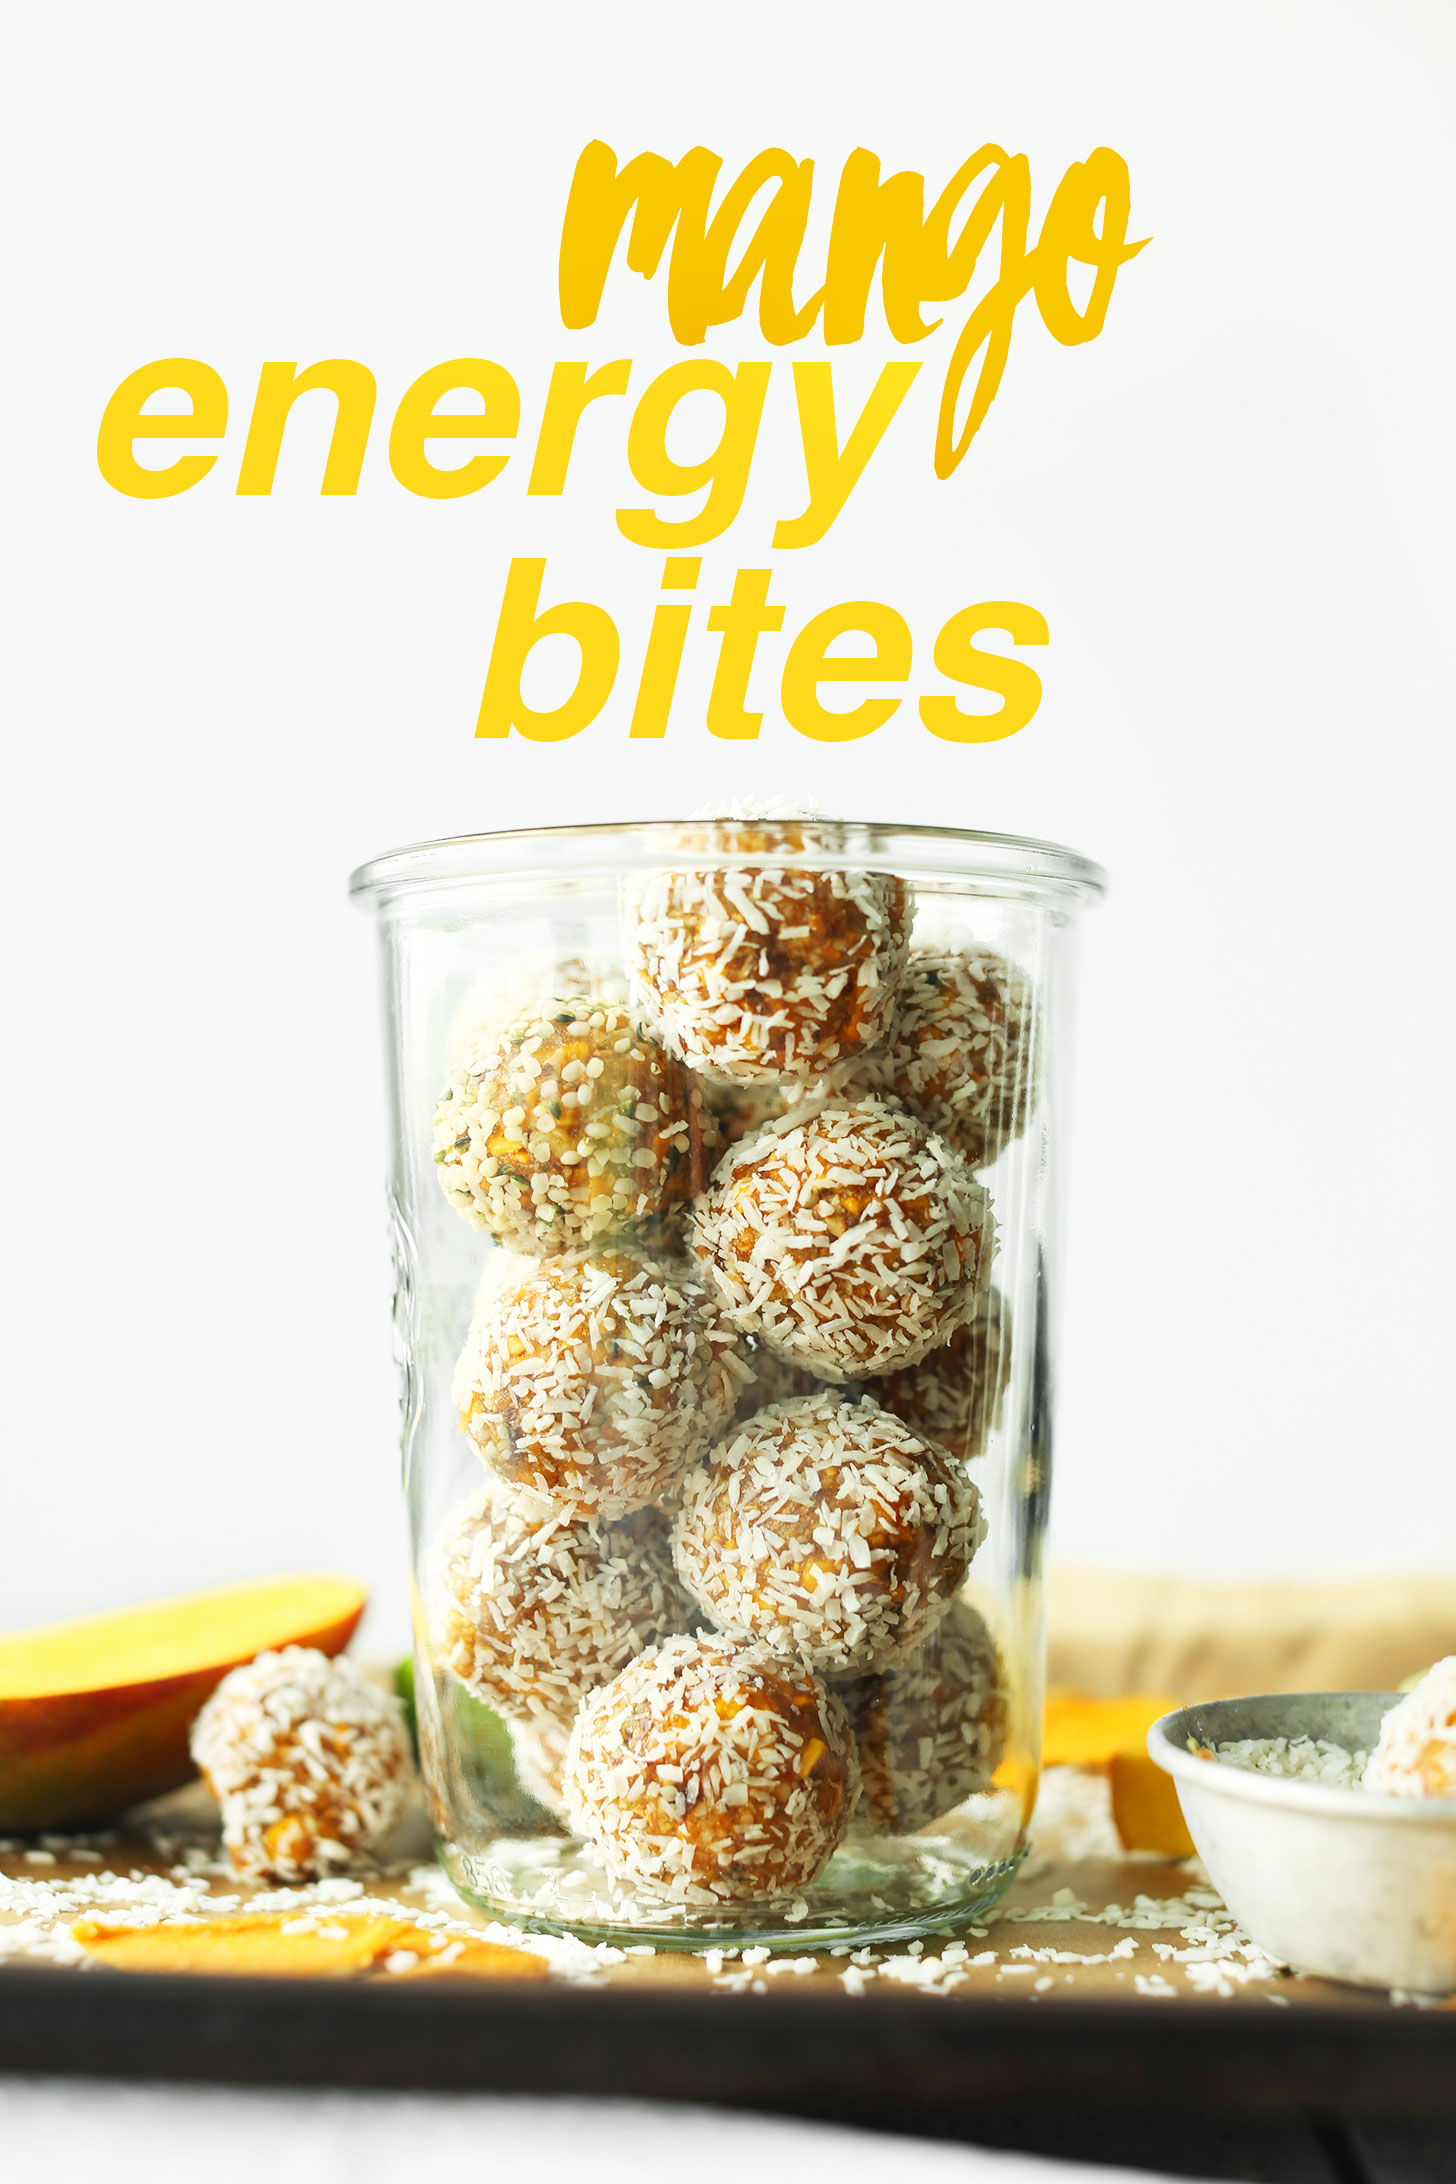 EASY Mango Energy Bites with 6 ingredients, naturally sweetened, full of healthy ingredients! #vegan #glutenfree #mango #recipe #minimalistbaker